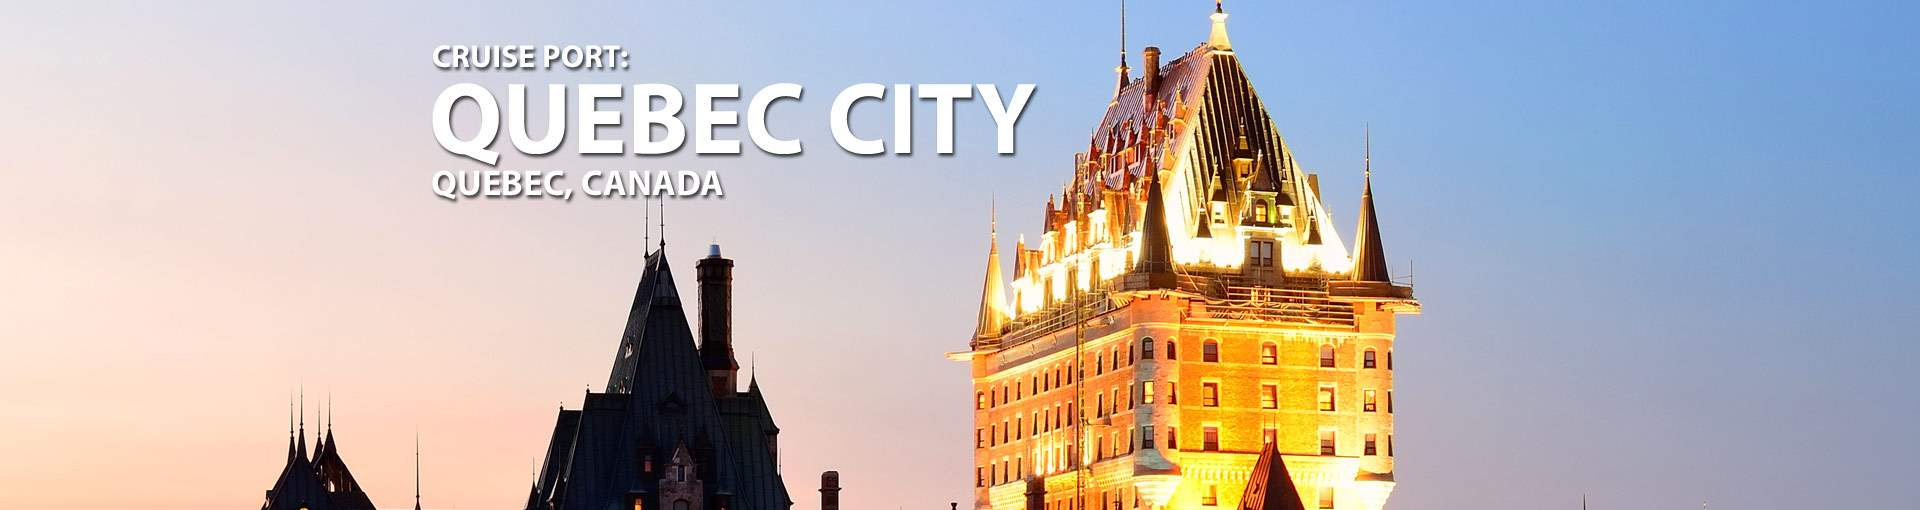 Cruises from Quebec City, Quebec